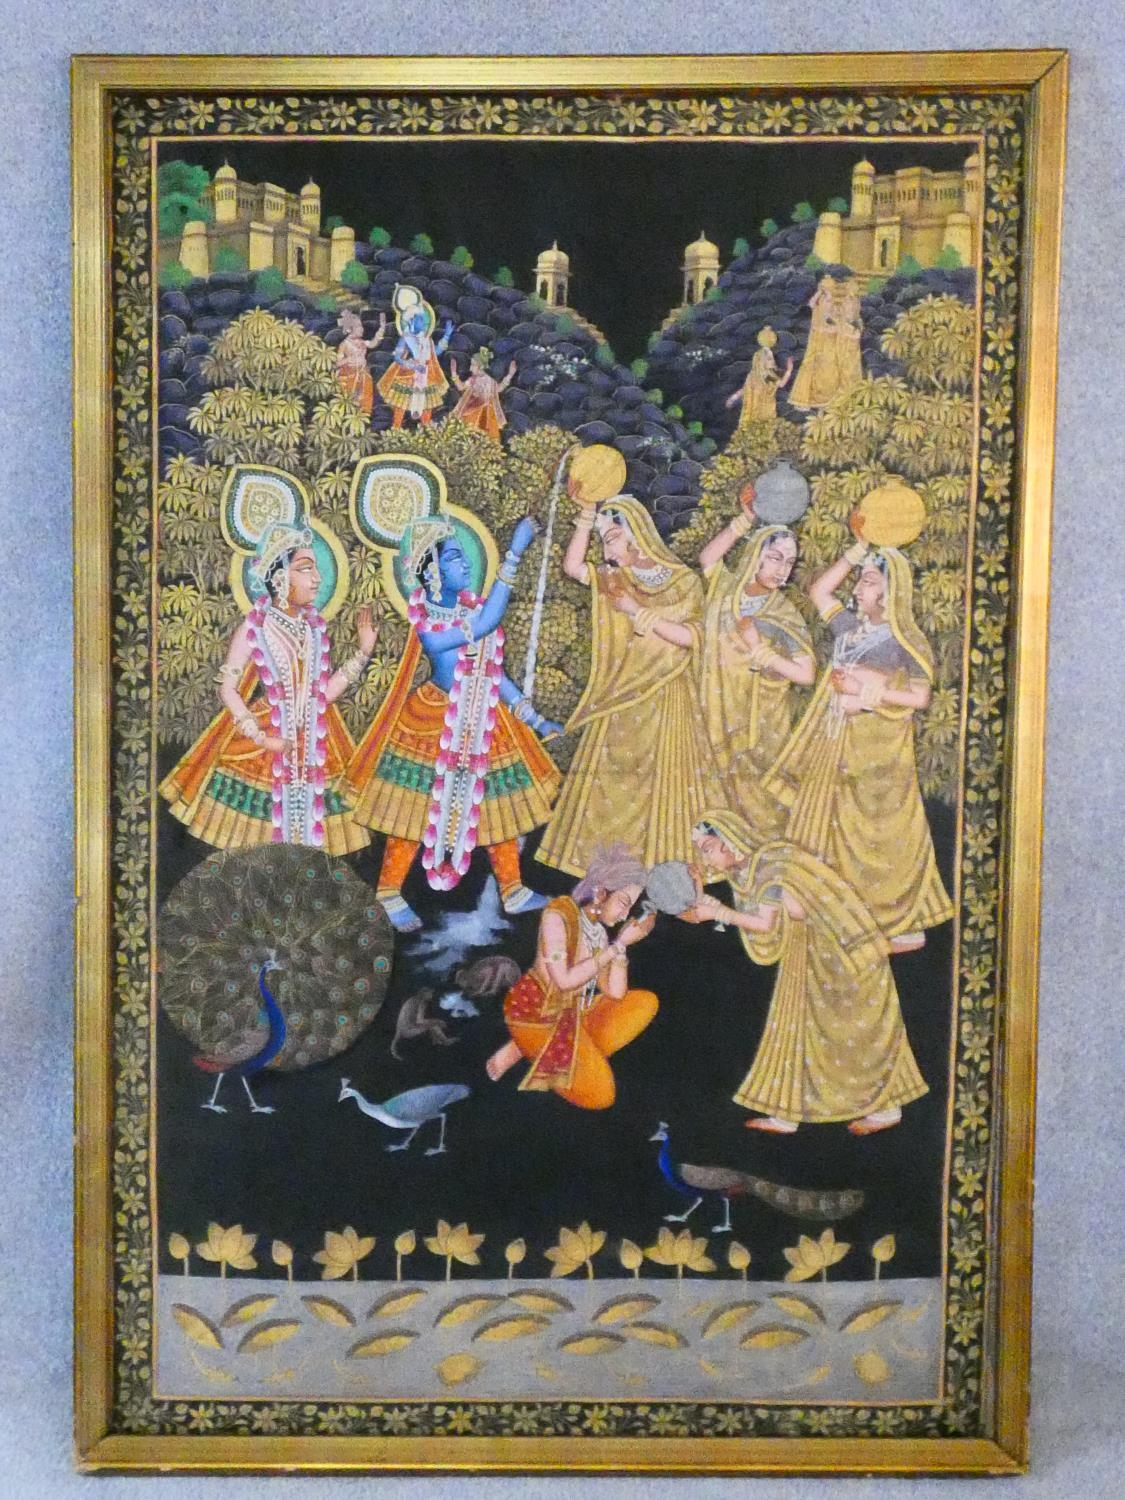 A large framed Indo-Persian gilded silk painting of Krishna with females surrounding him, standing - Image 2 of 8